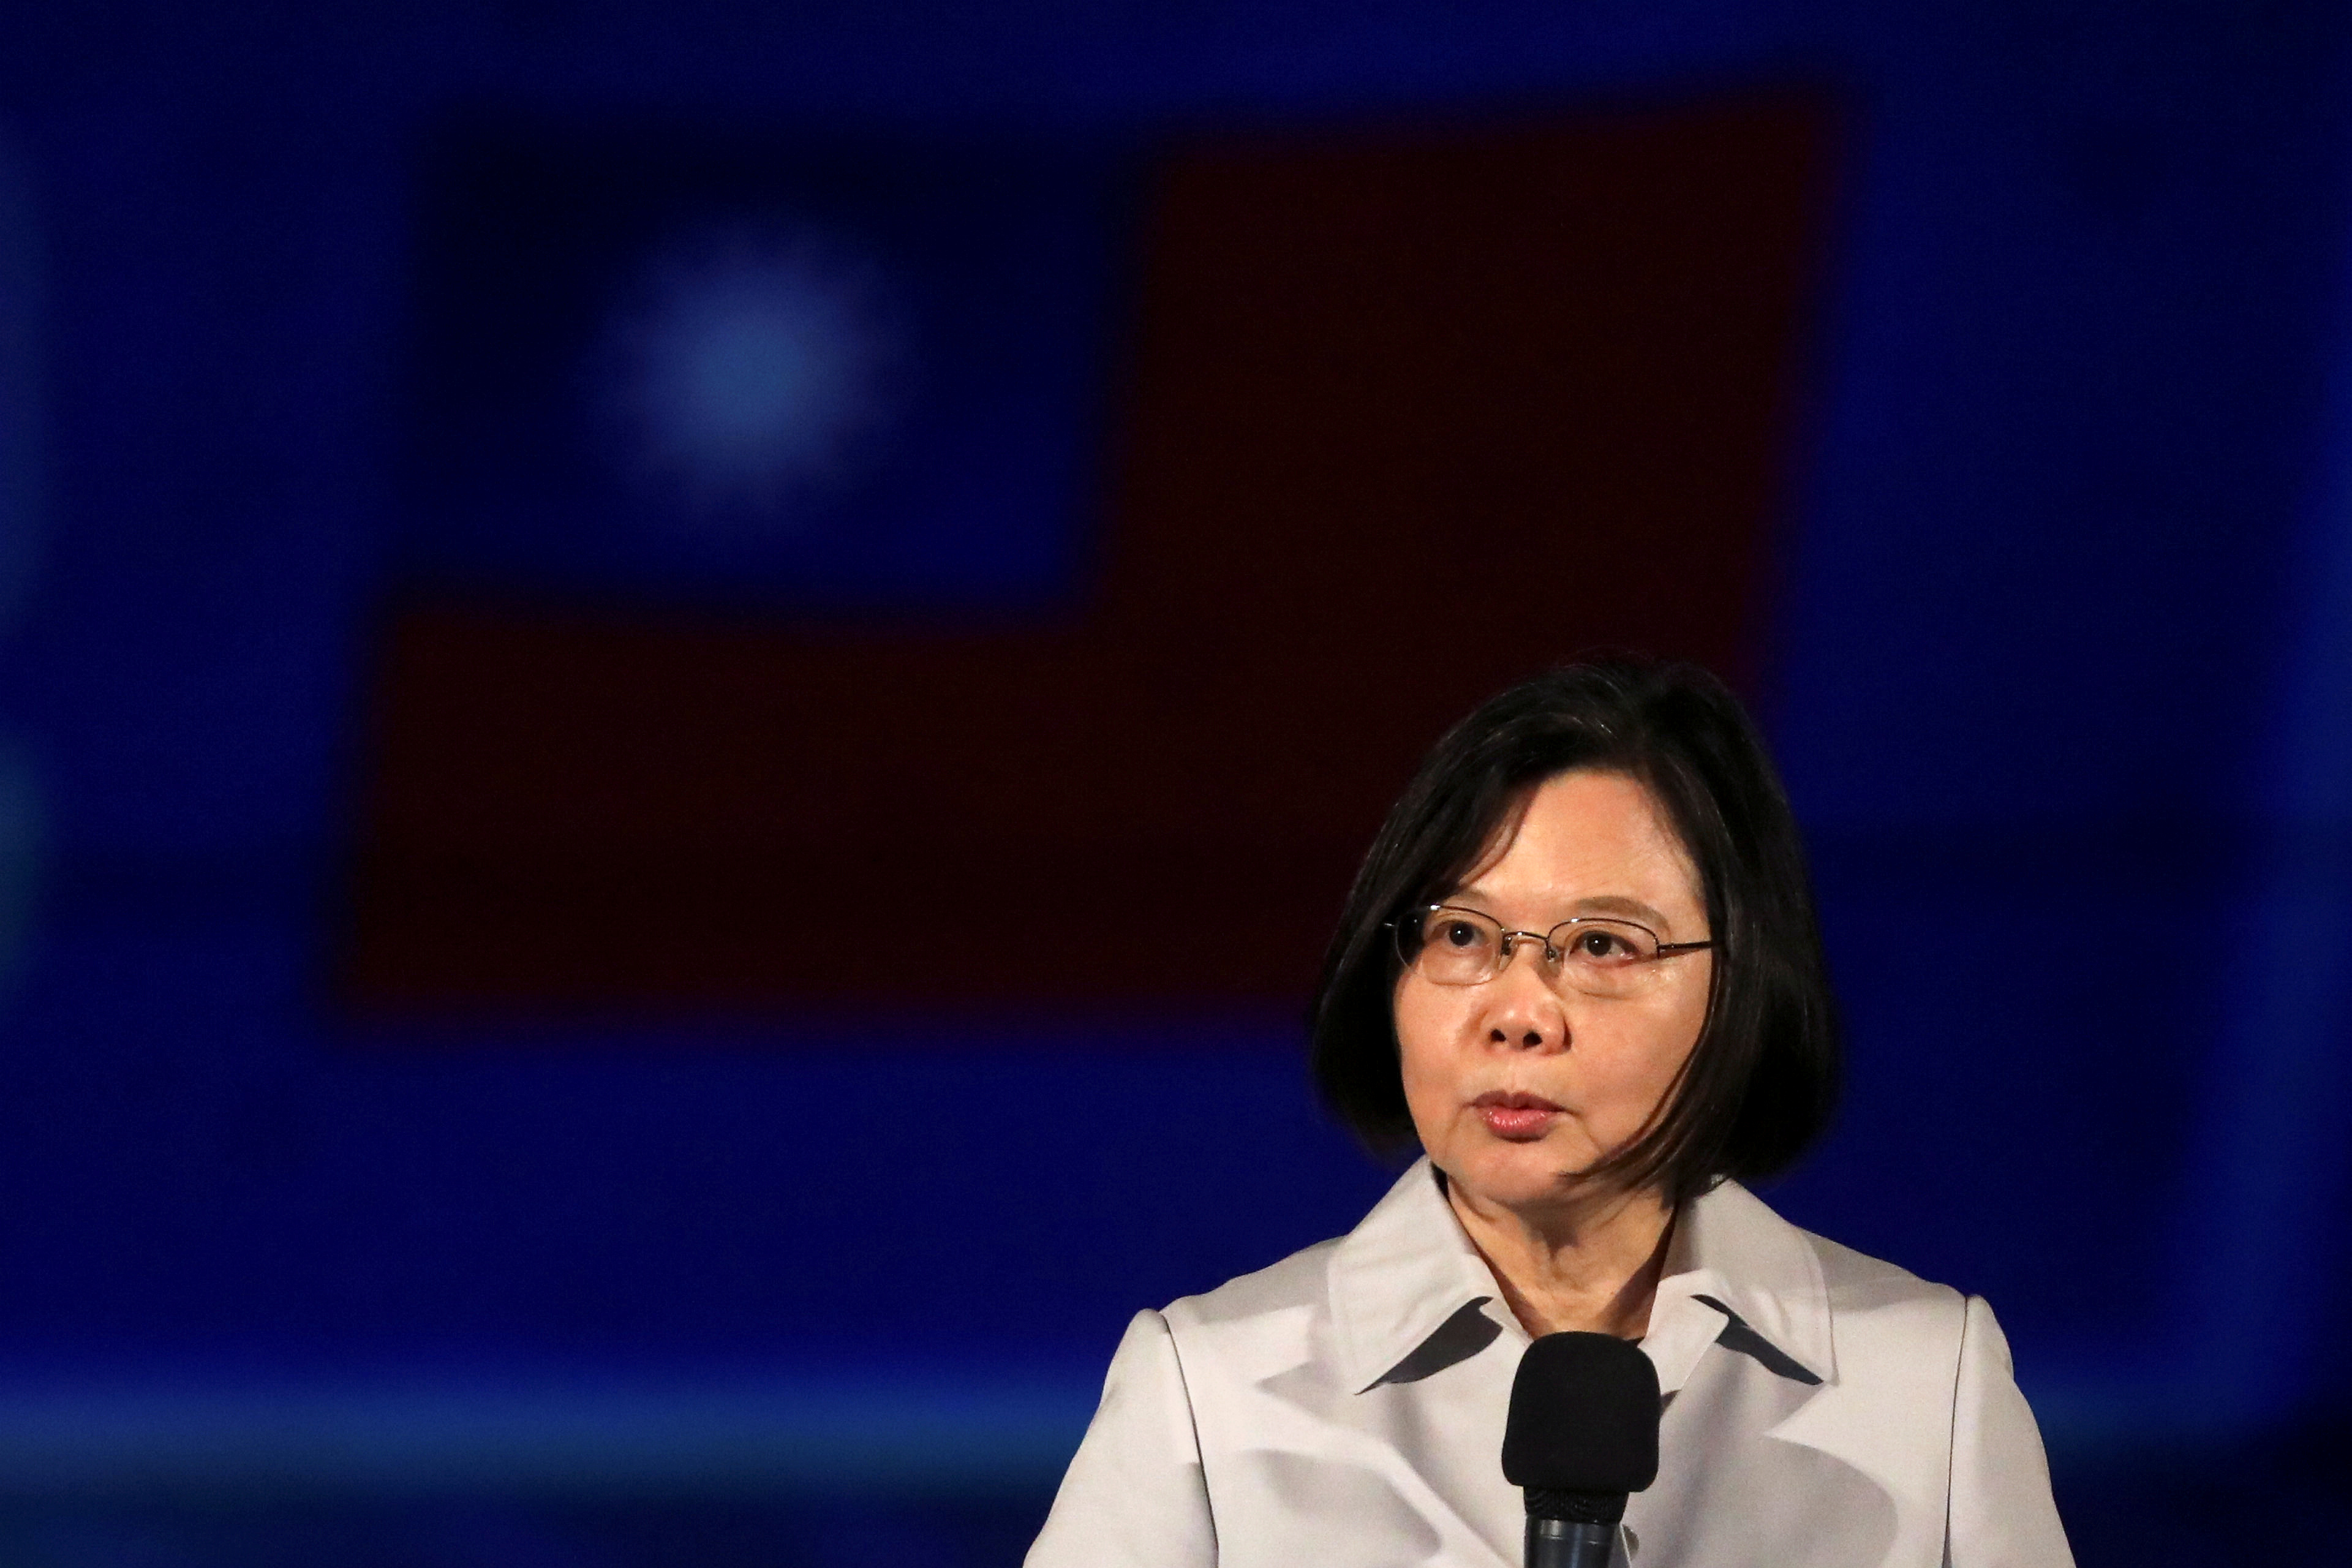 Taiwan President Tsai Ing-wen makes a speech ahead of the light show at the Presidential Office building for the National Day celebration in Taipei, Taiwan, October 6, 2020. REUTER/Ann Wang